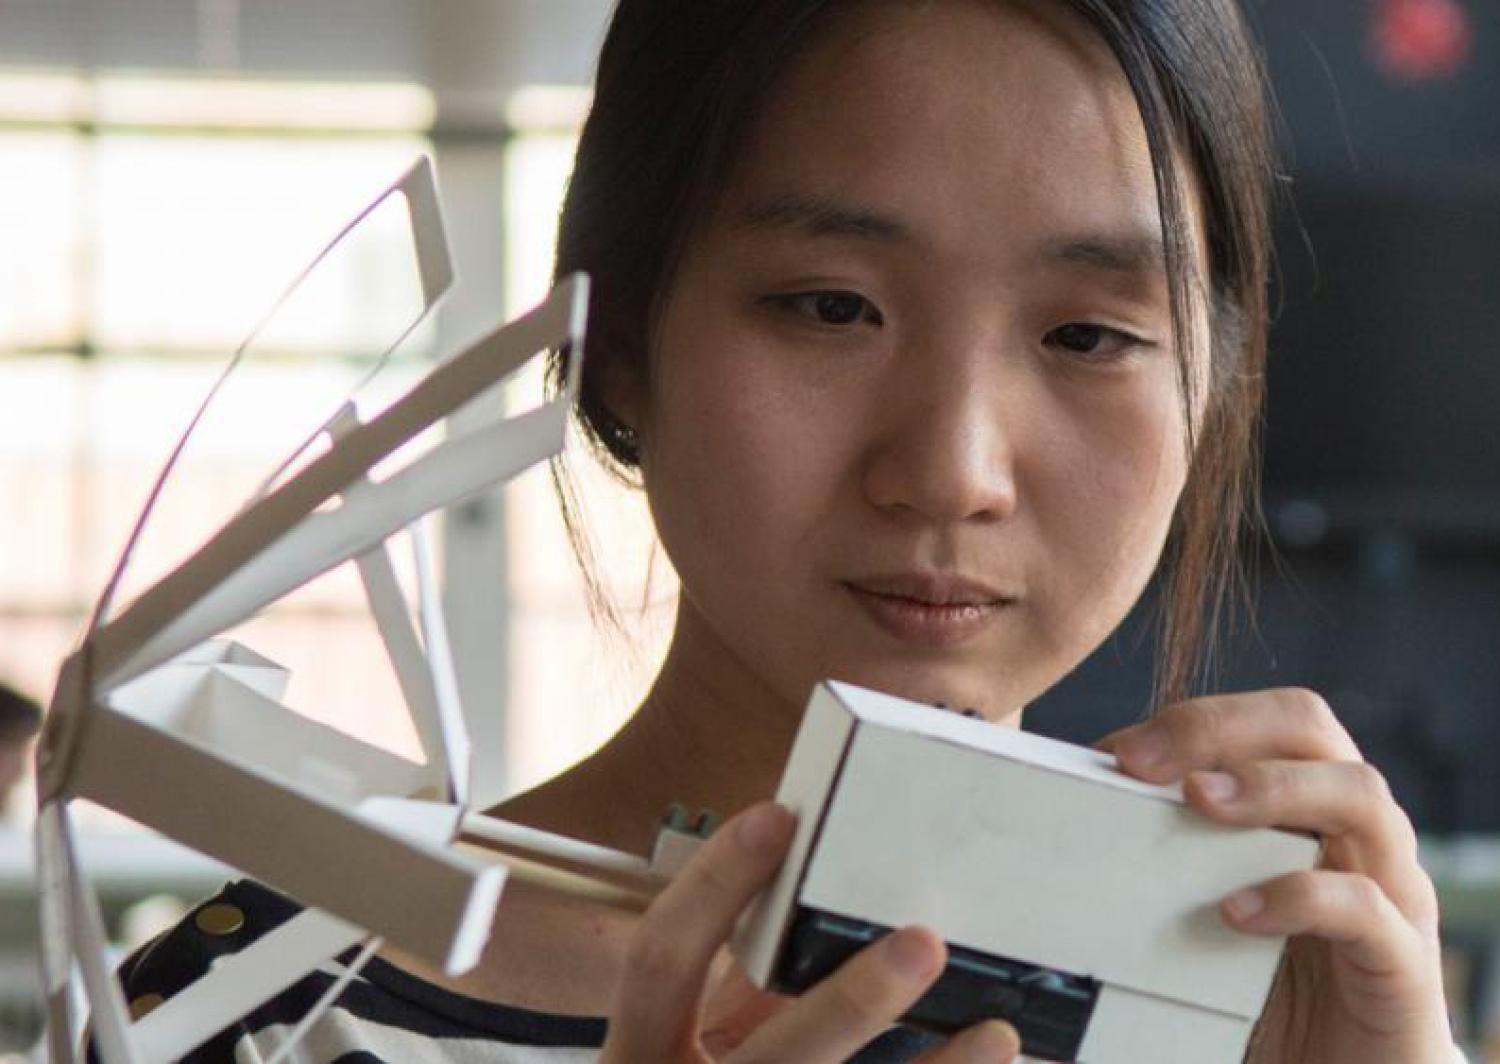 HyunJoo Oh works with mechanical paper devices.